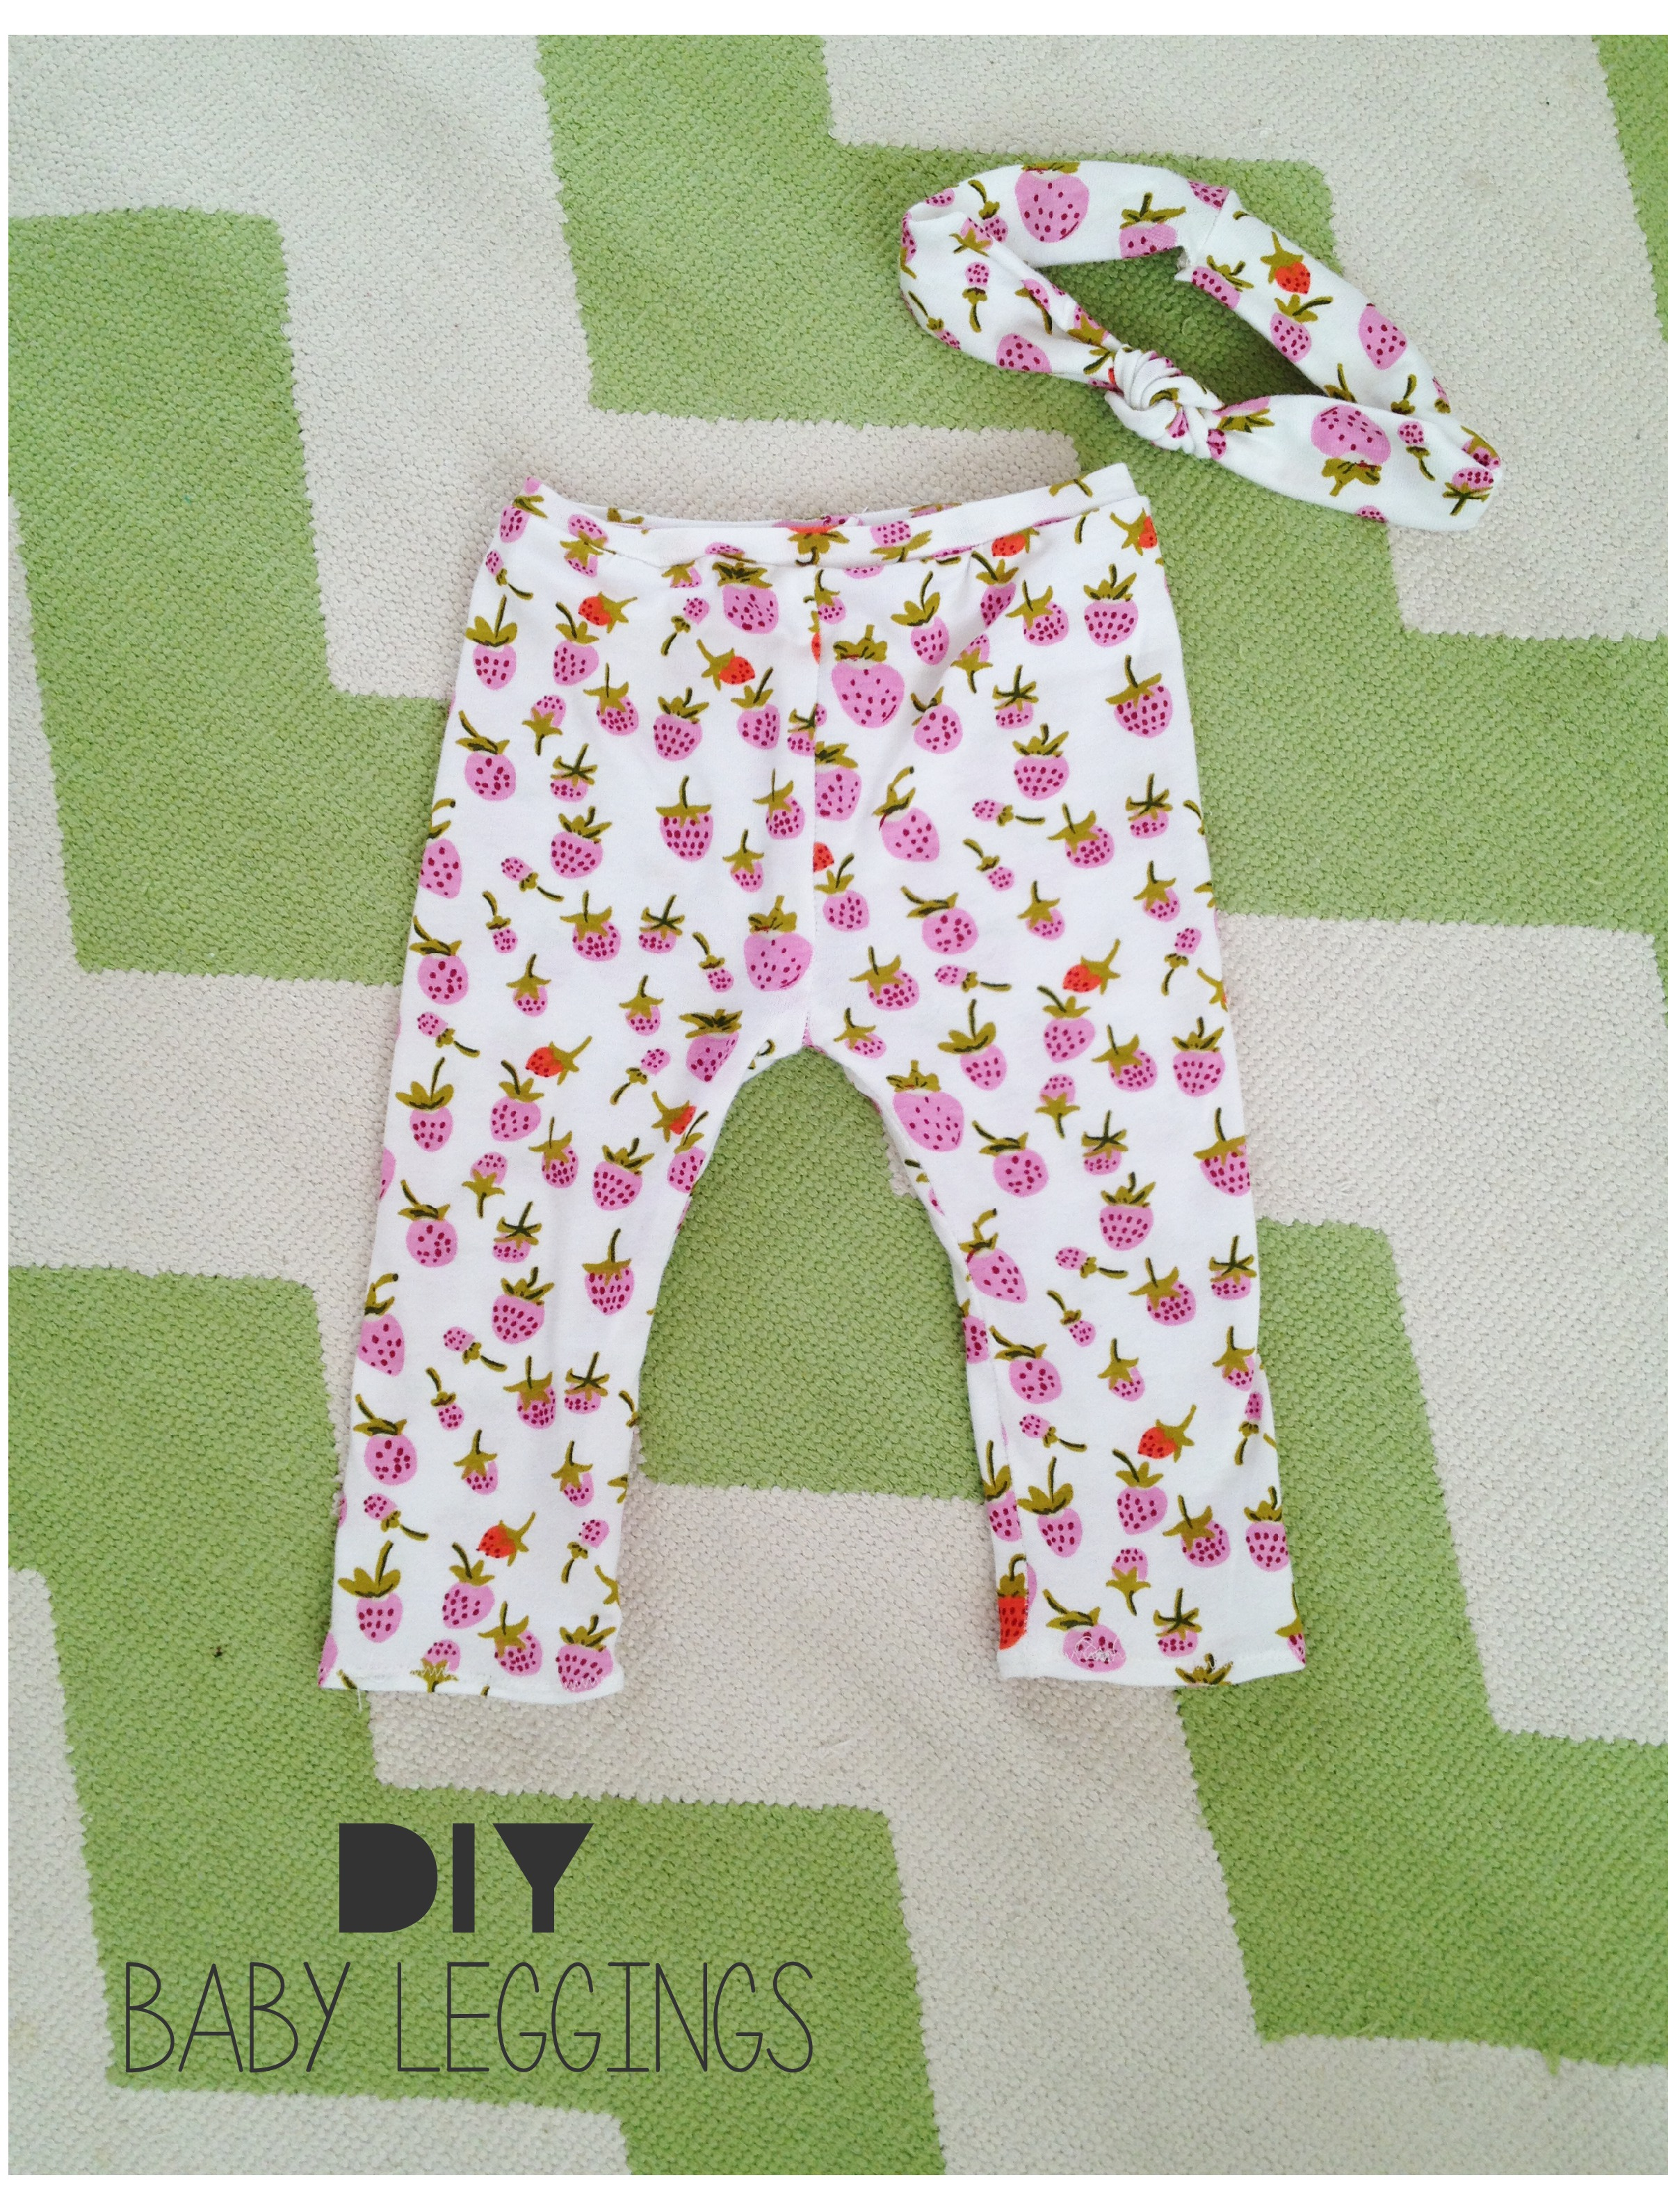 Baby Leggings Sewing Tutorial | The Sara Project